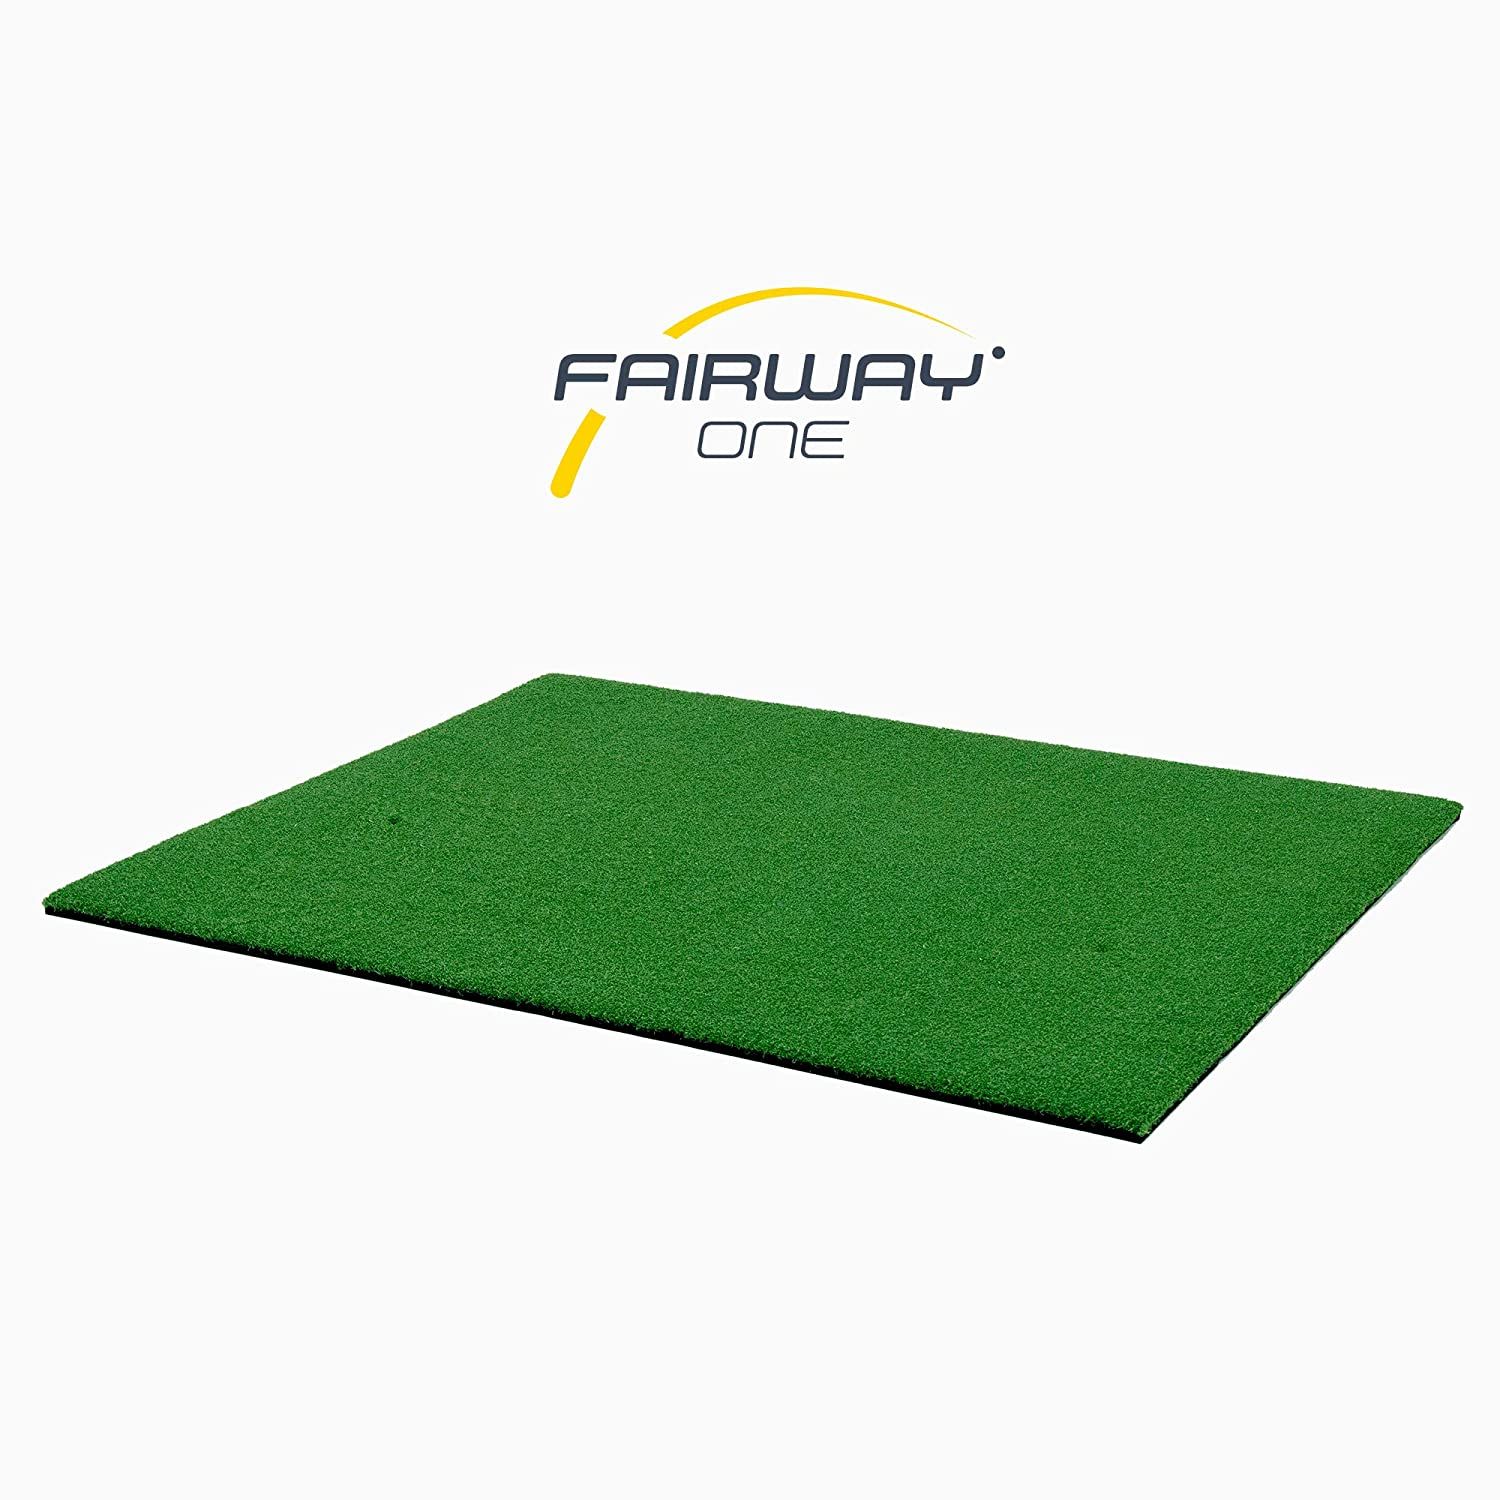 Motivo Golf Fairway One Tour Golf Driving Mat 4 x 5 Feet Free Two-Day Delivery